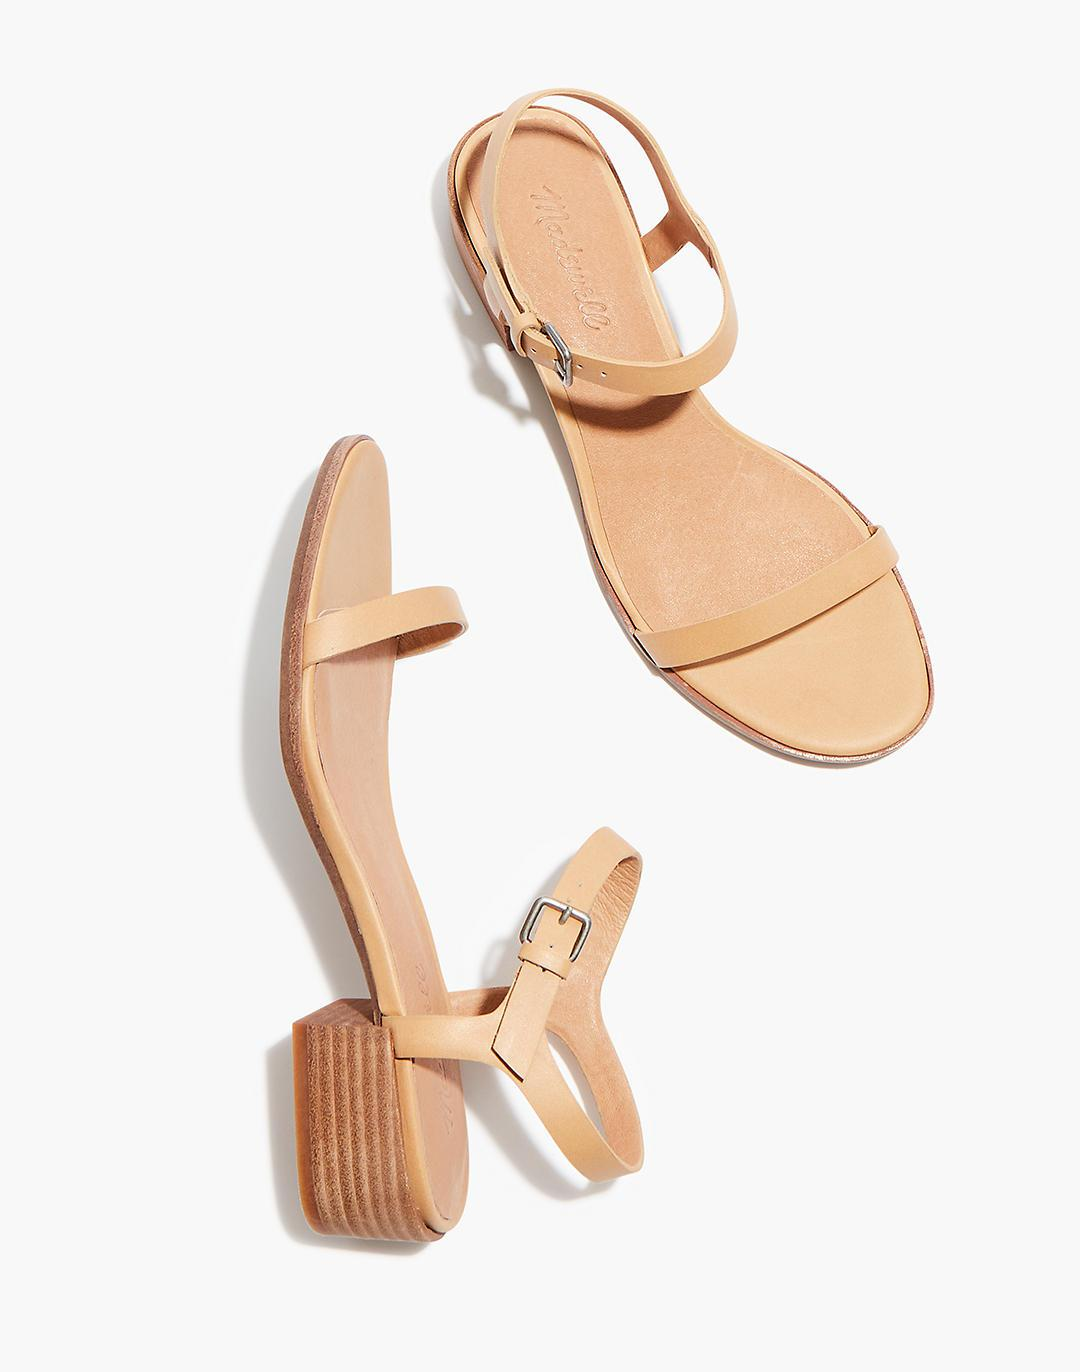 The Louise Sandal in Leather